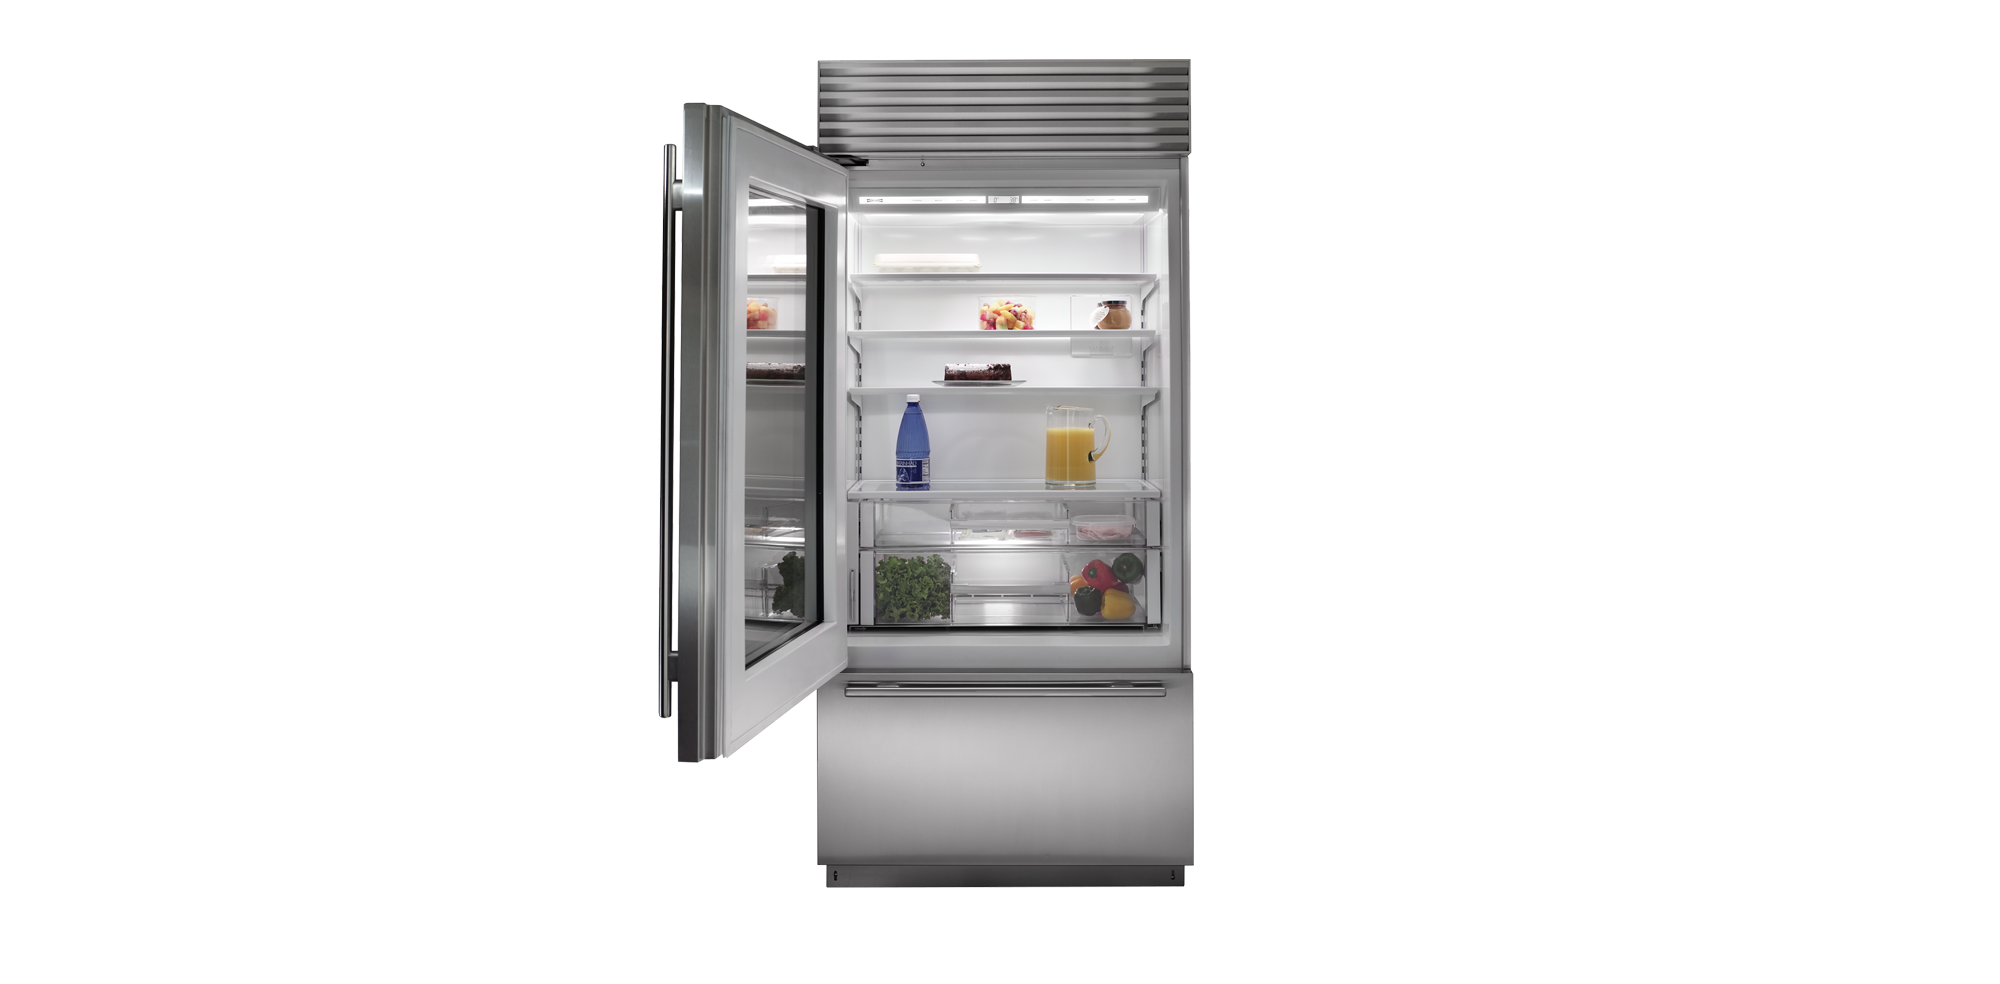 Transparent refrigerator zero. Sub appliances refrigerators ranges